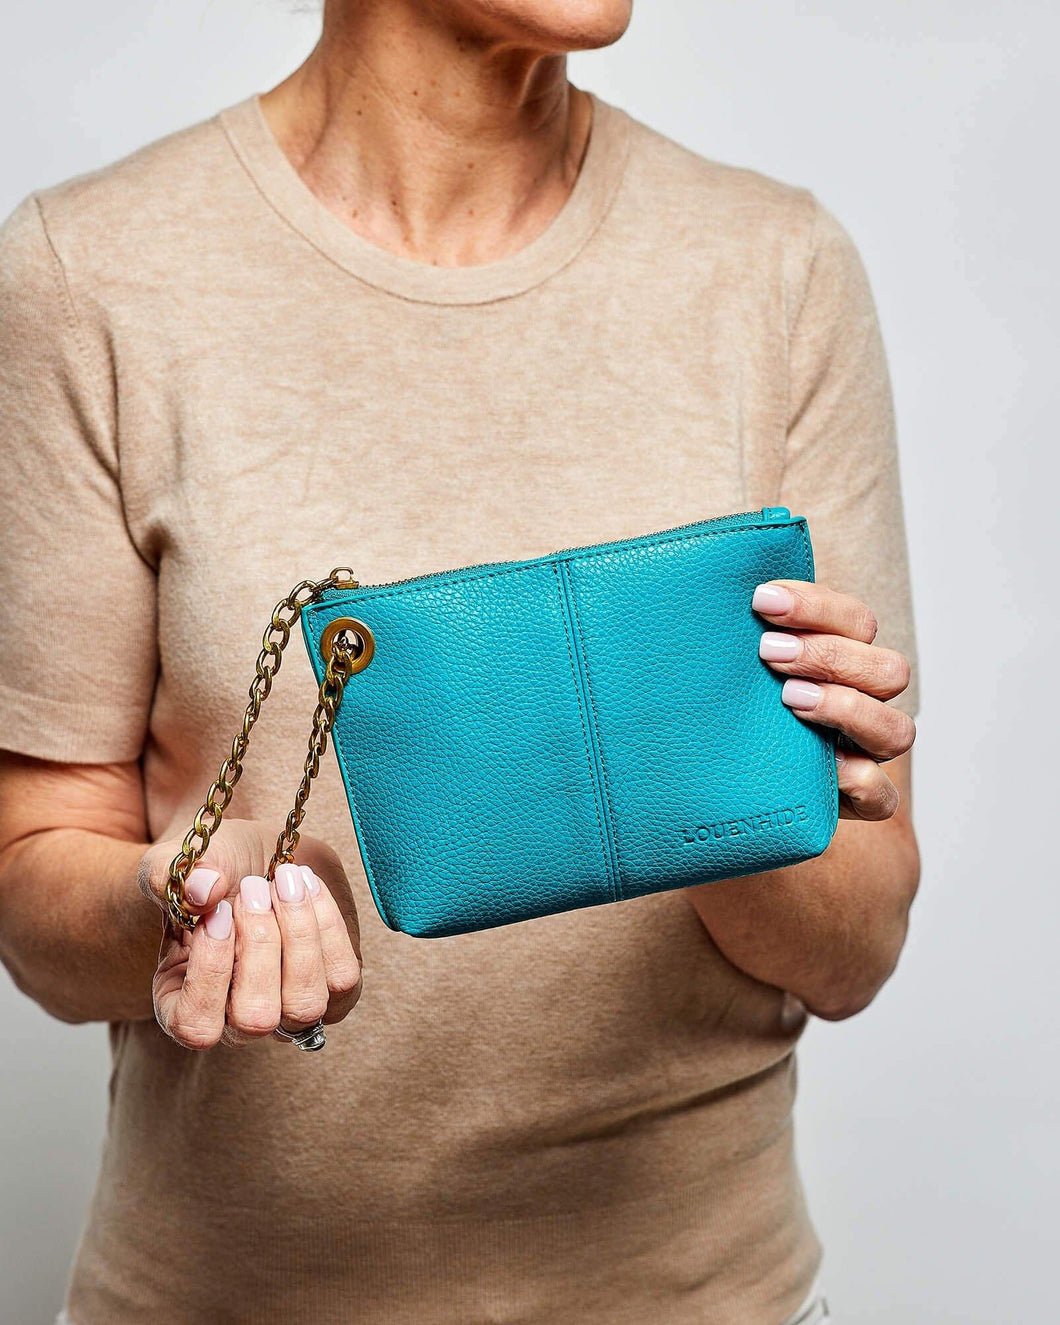 Louenhide Tasha Turquoise Clutch - Global Free Style